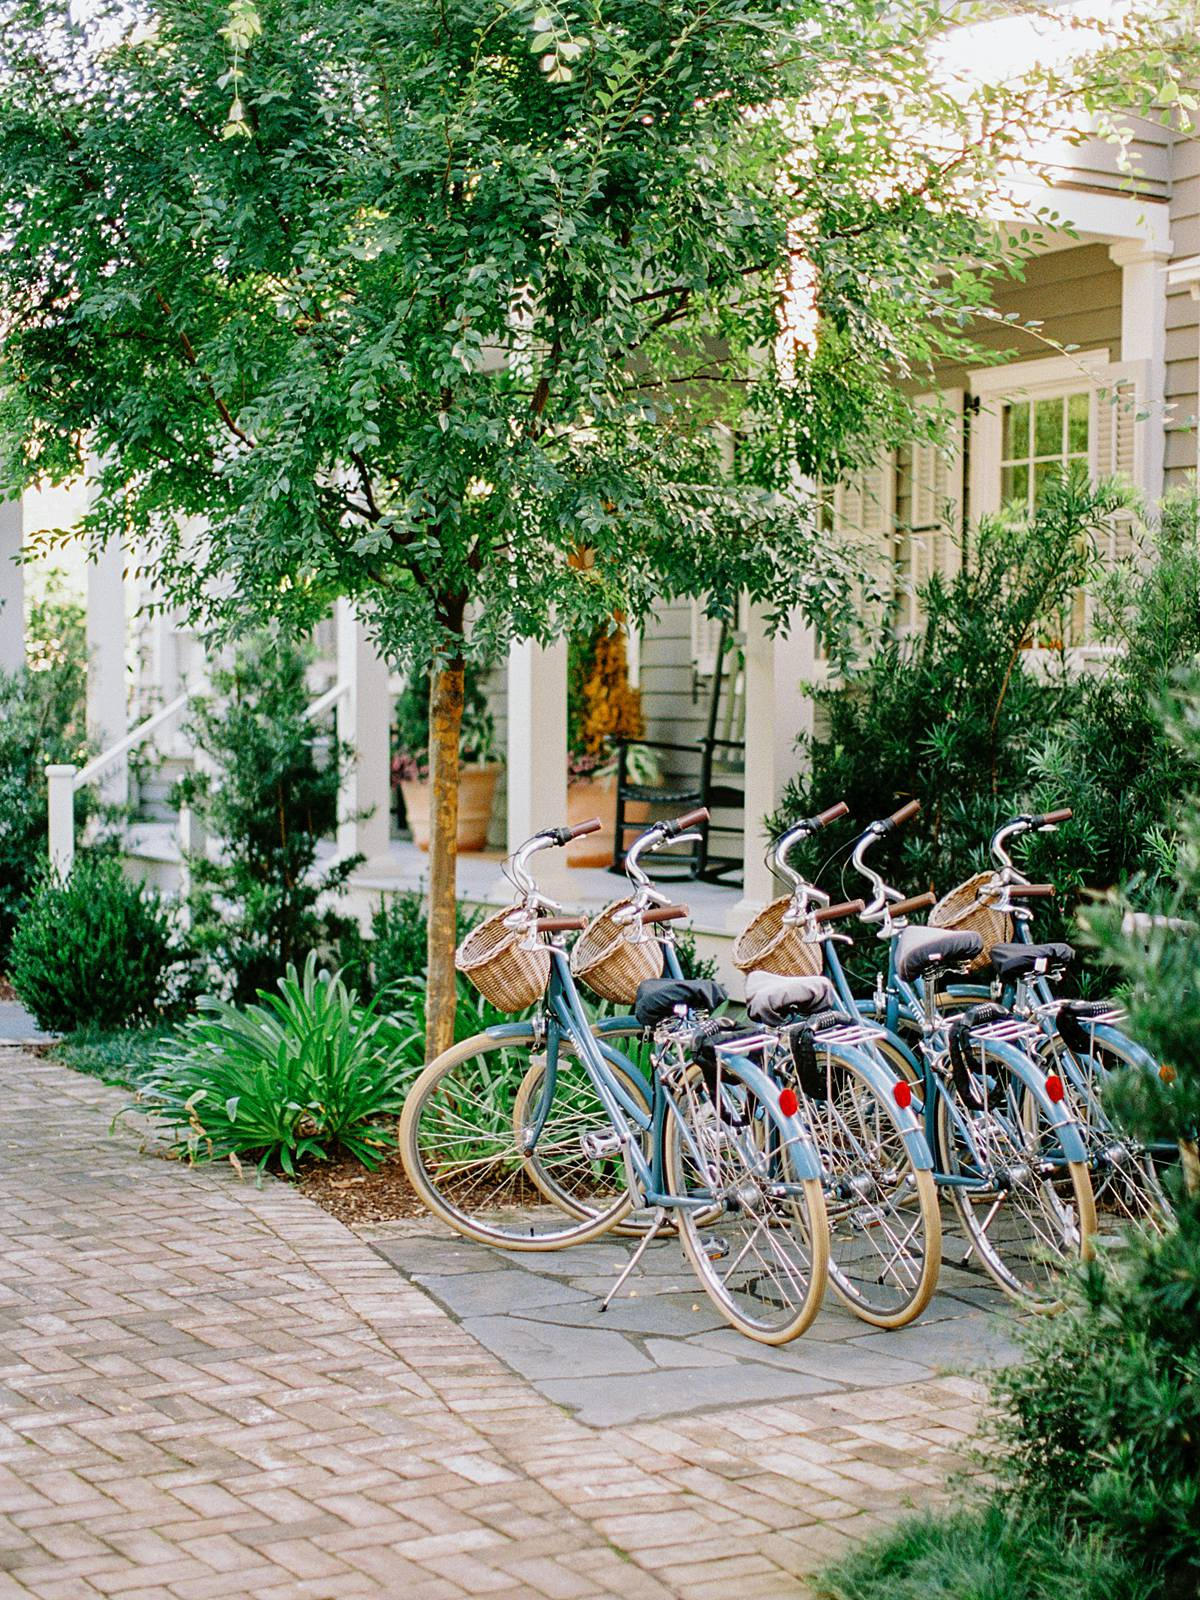 86 cannon charleston wedding venue bride getting ready hotel downtown with vintage bikes and courtyard